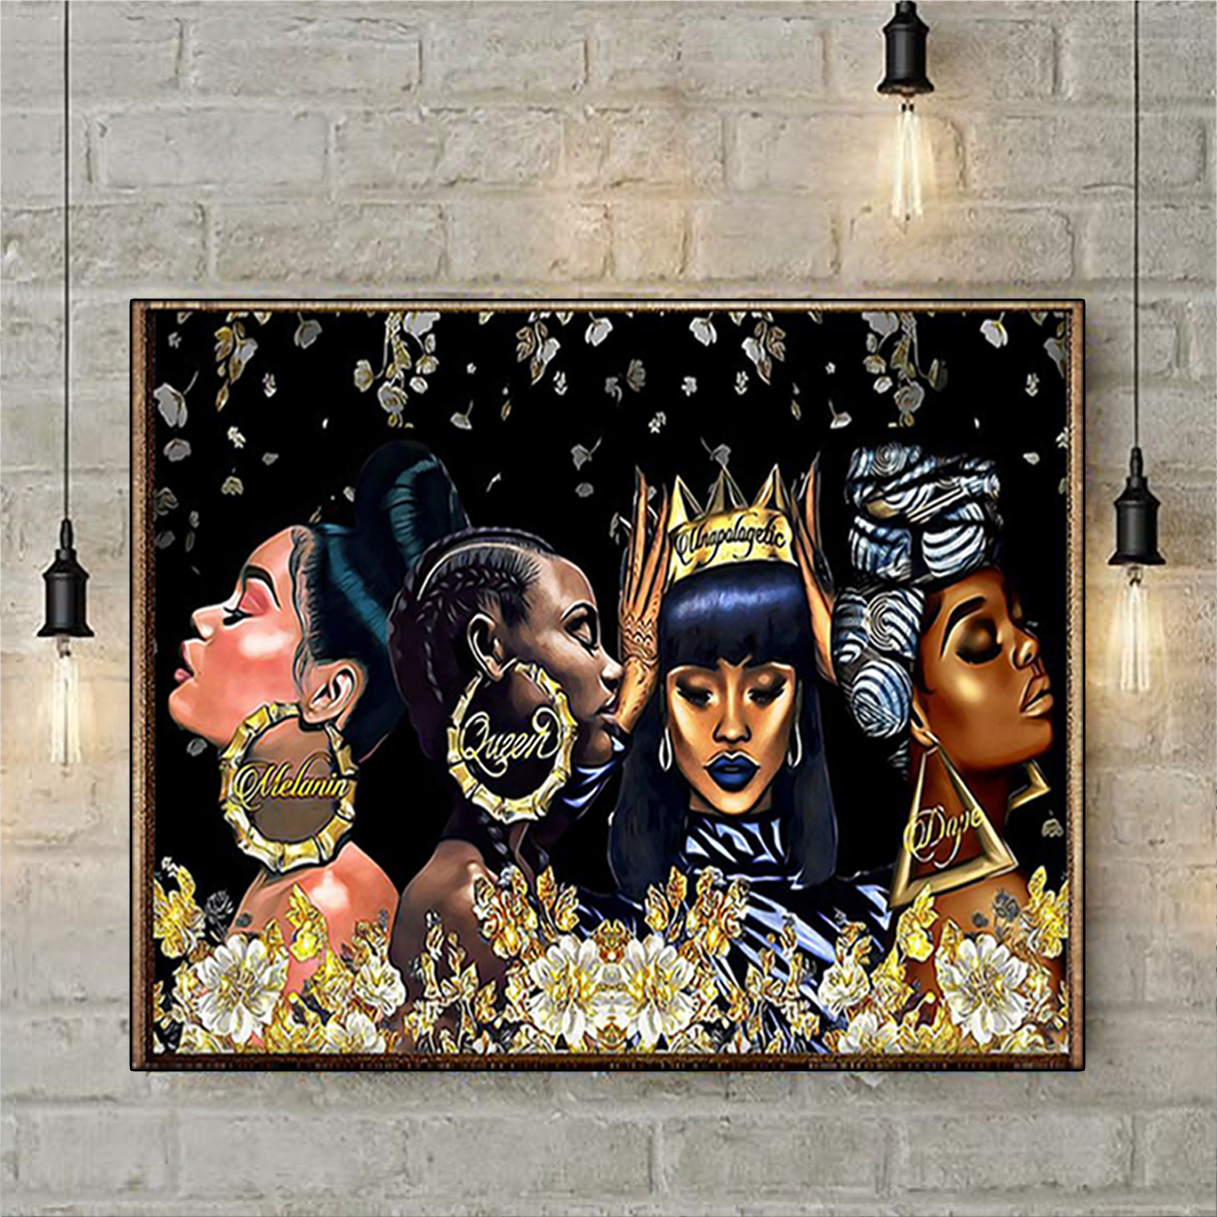 Black woman melanin queen unapologetic dope poster A3